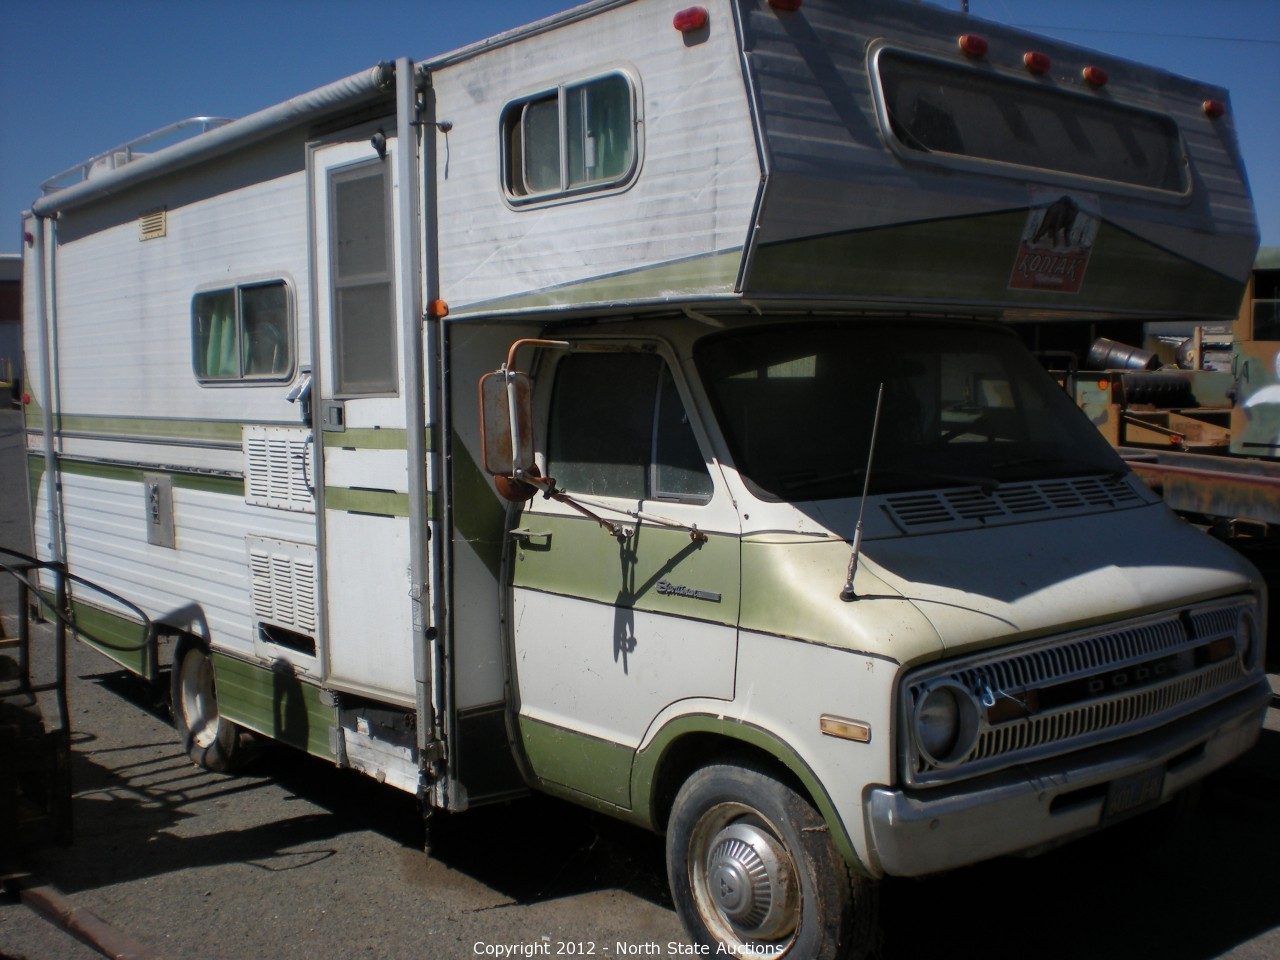 1973 Dodge Motorhome Wiring Diagram Motor Home Urban Interior North State Auctions Auction Small Animal Husbandry Breeding Rh Northstateauctions Com Motorhomes